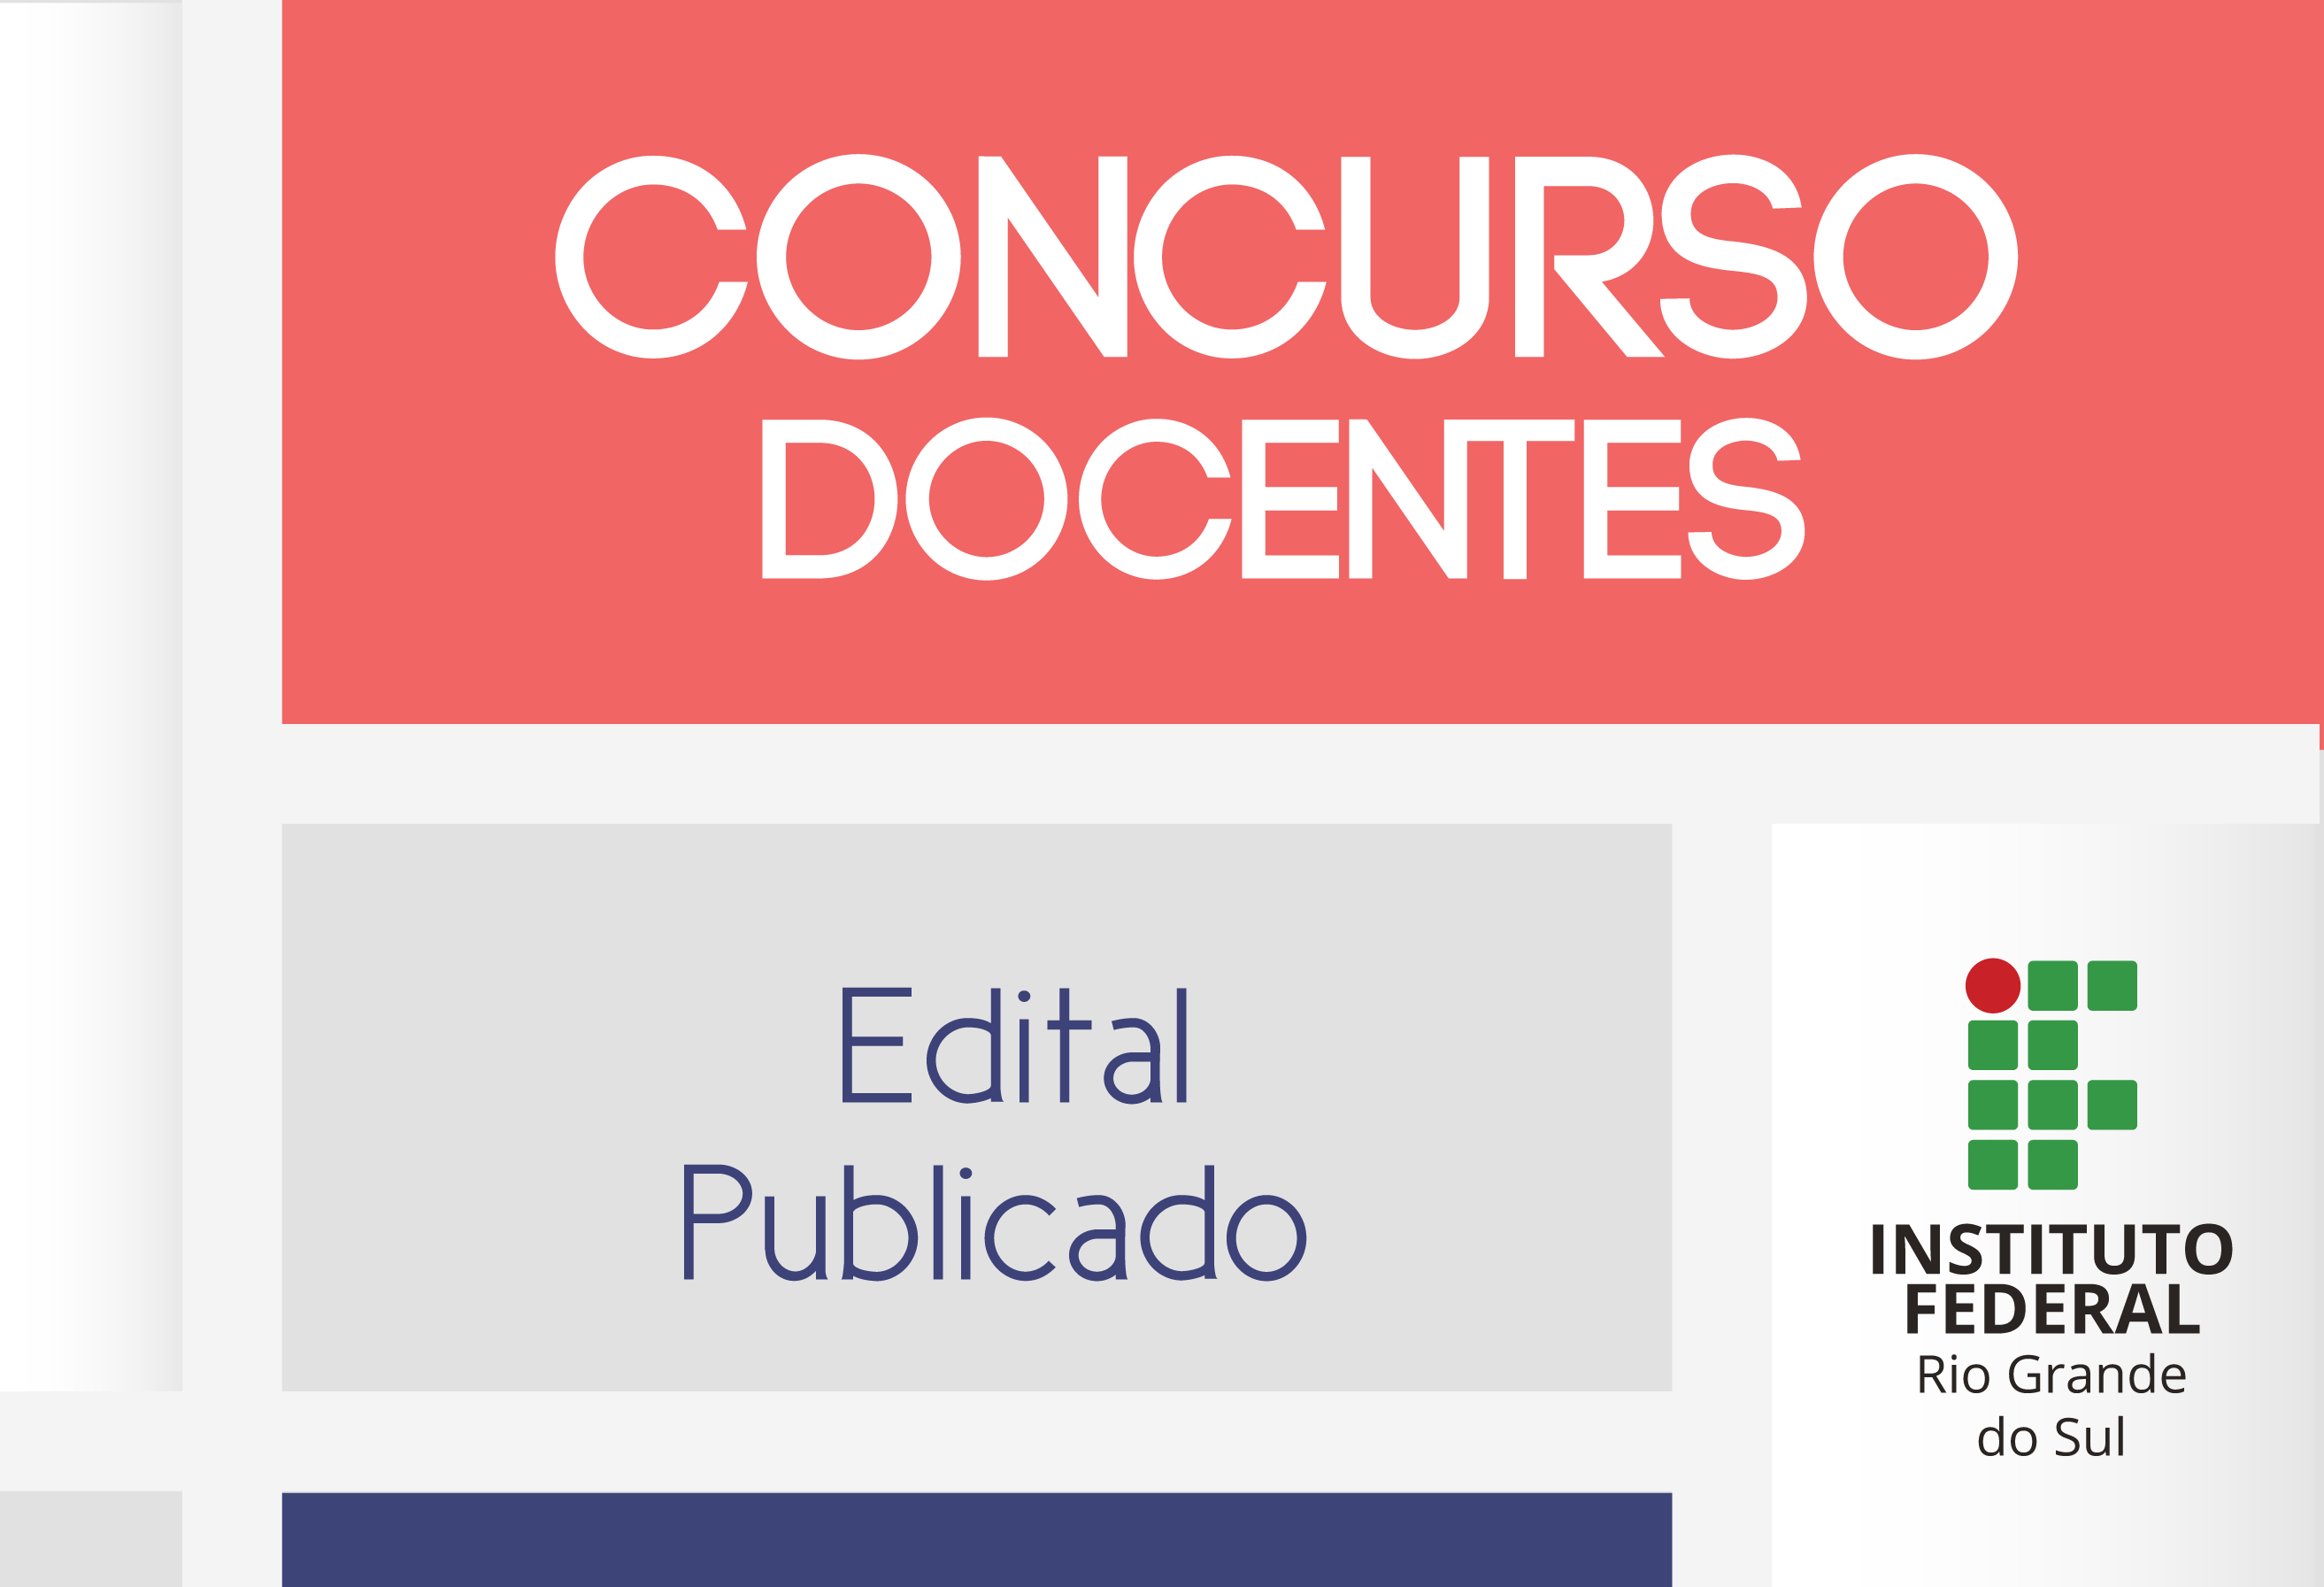 Ifrs campus farroupilha for Concurso docentes